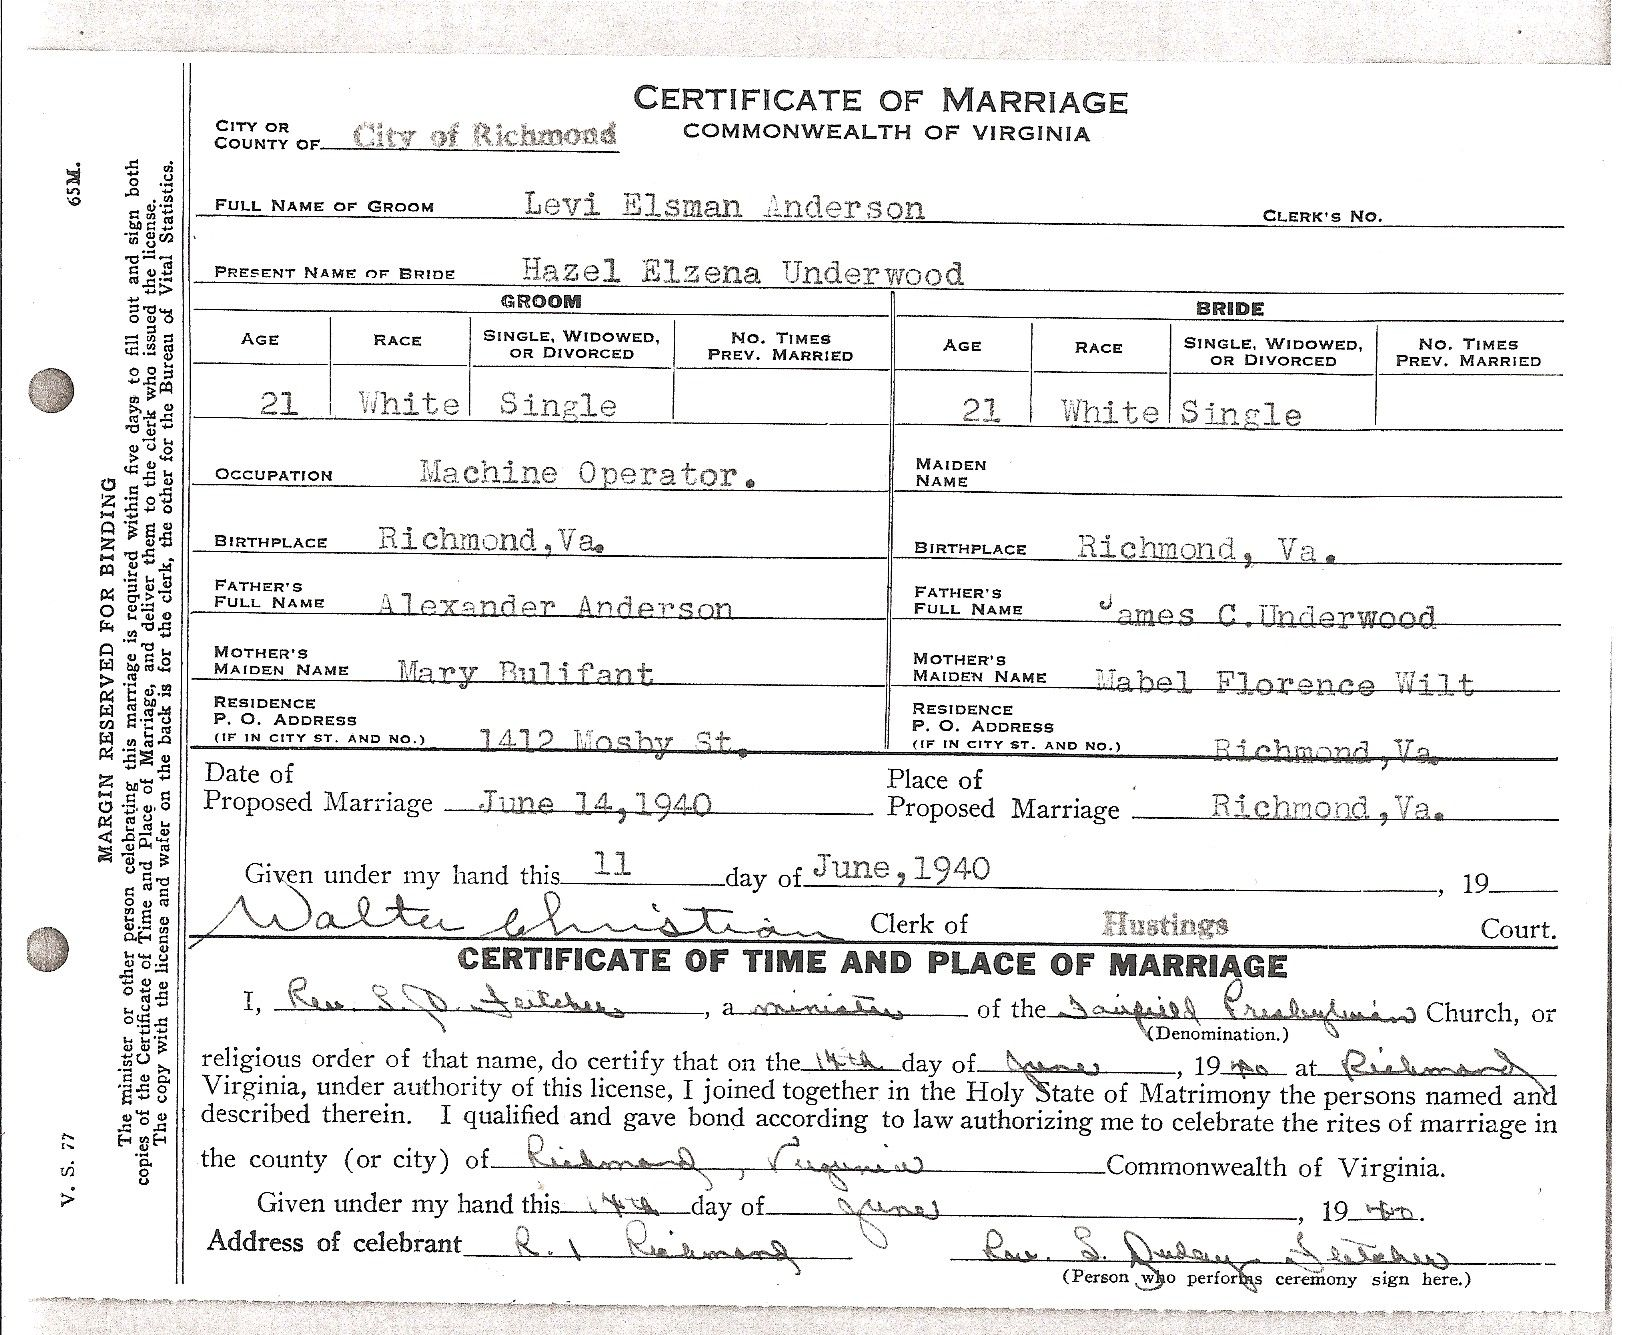 Marriage Certificate For Levi Anderson And Hazel Underwood